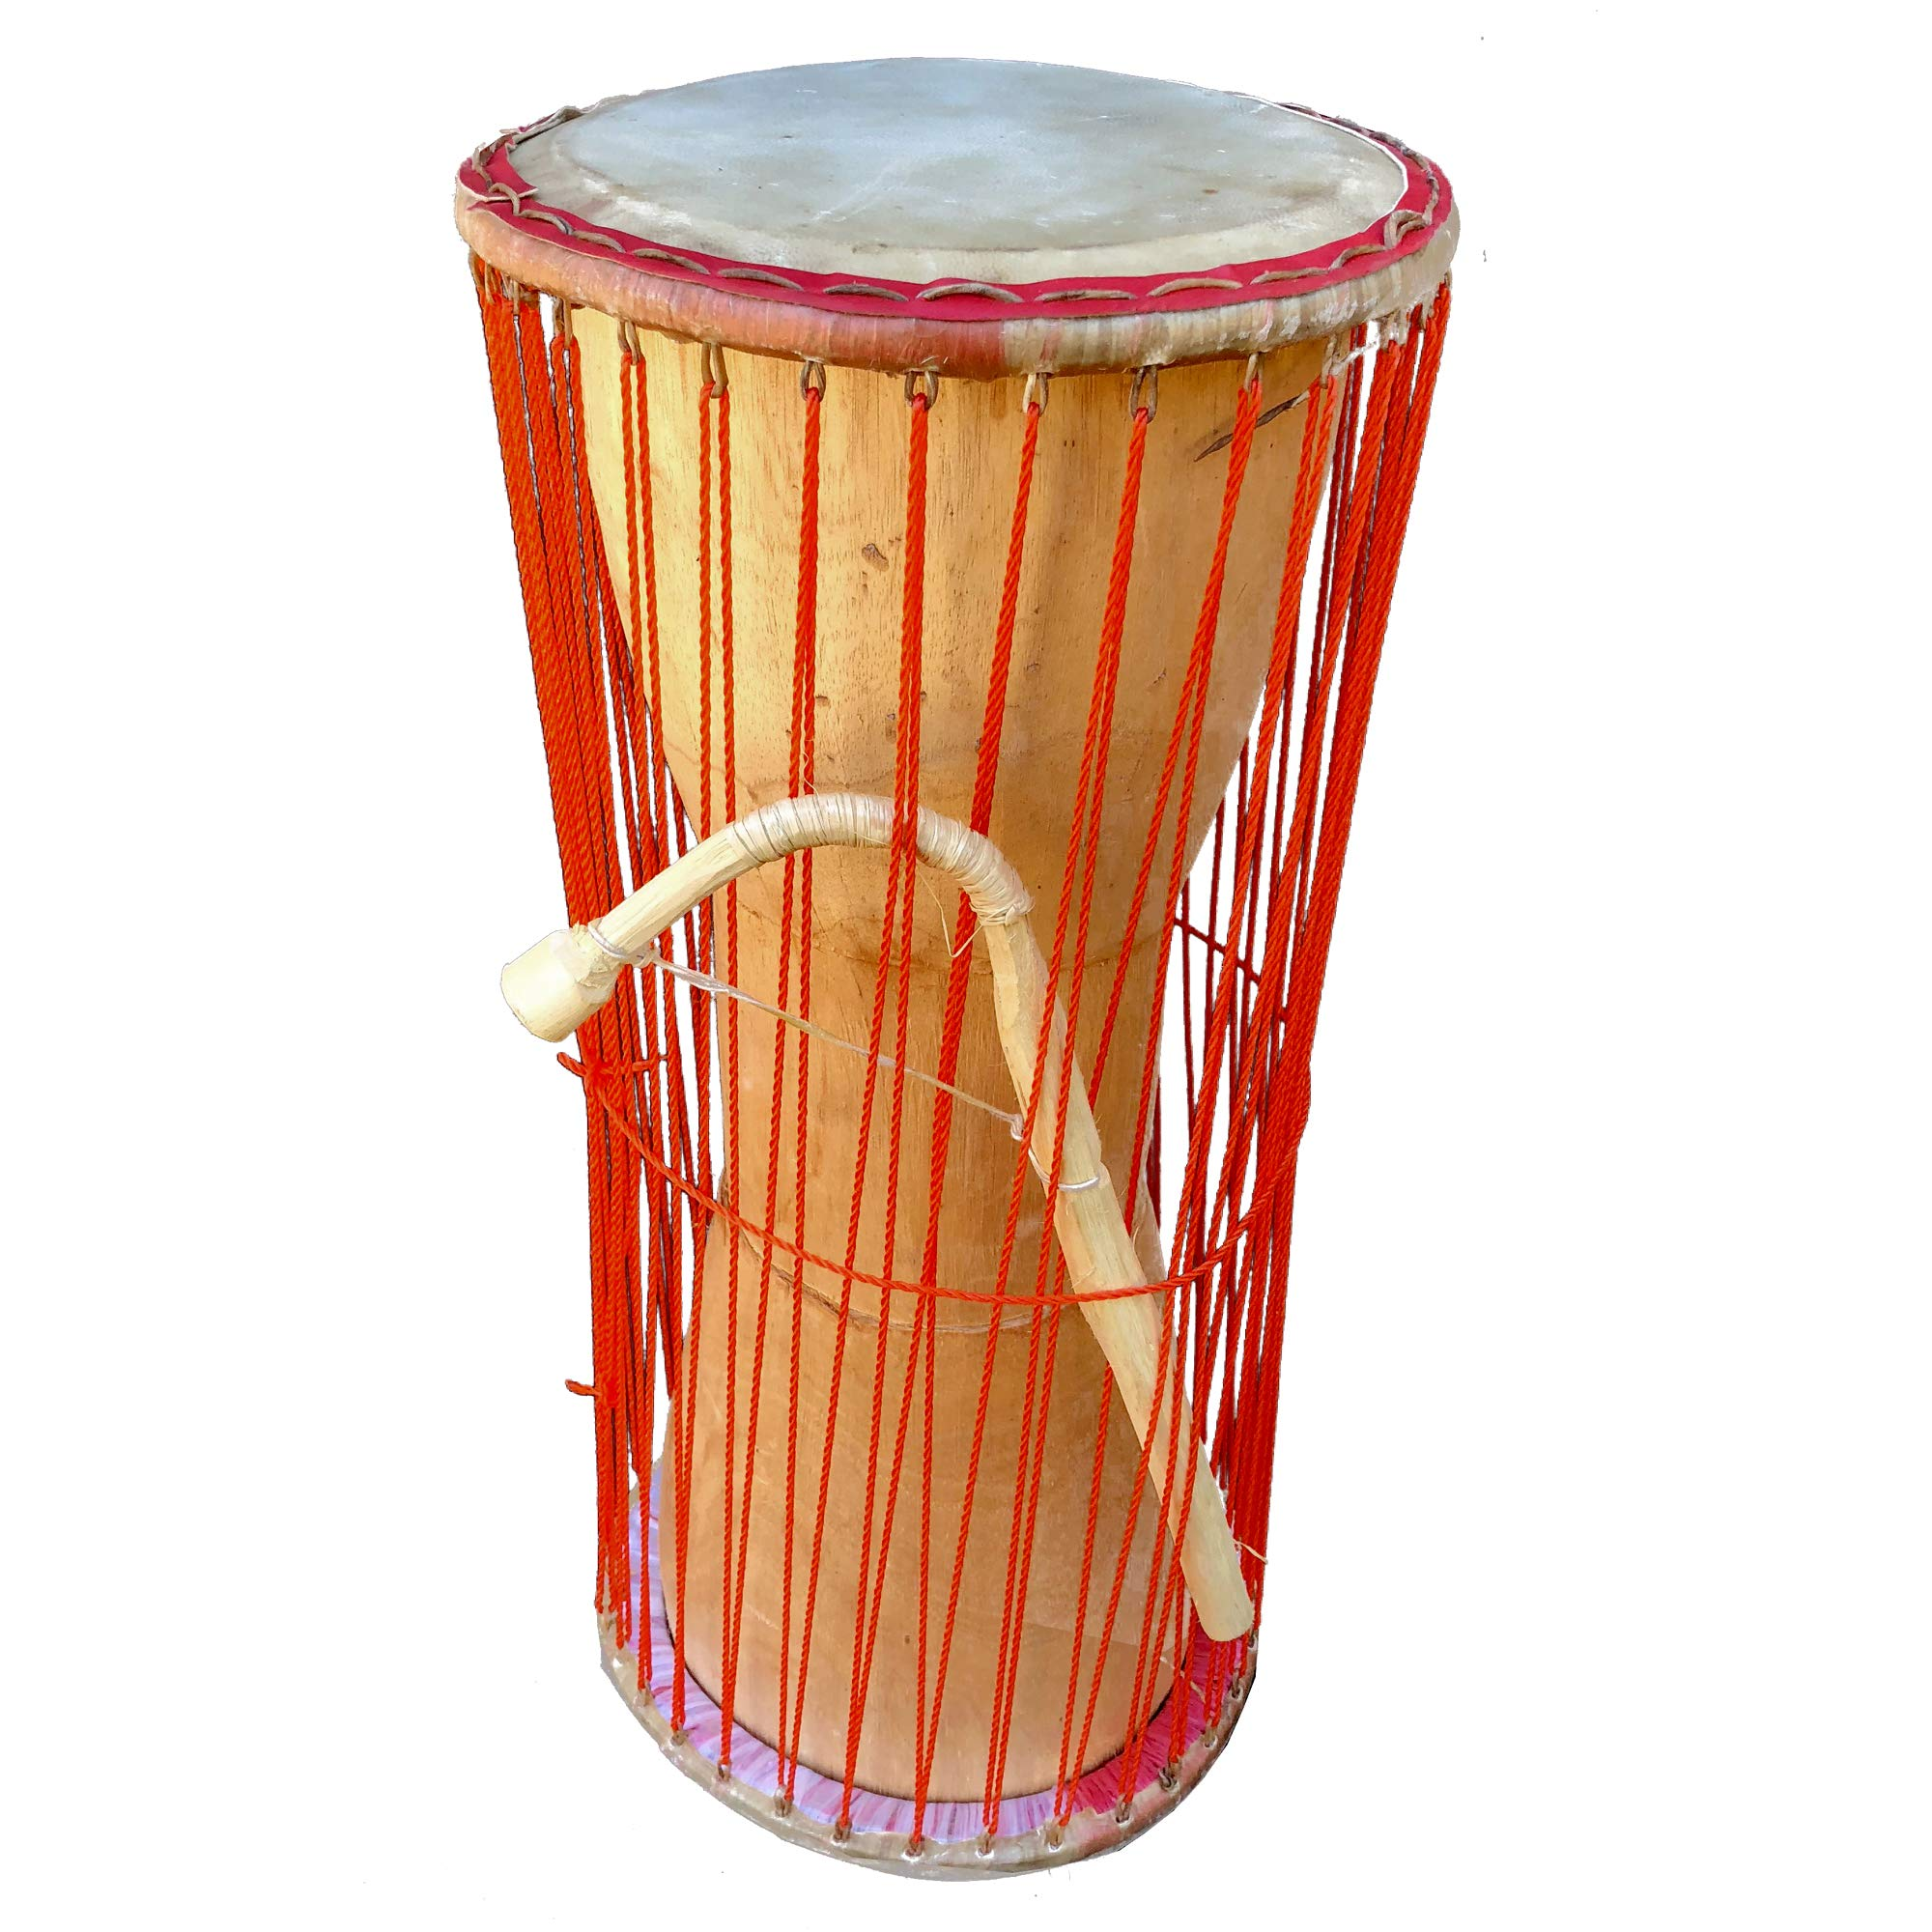 Classic Heartwood Dondo Talking Drum 7x15, African Talking Drum with Curved Stick - Ghana by Africa Heartwood Project